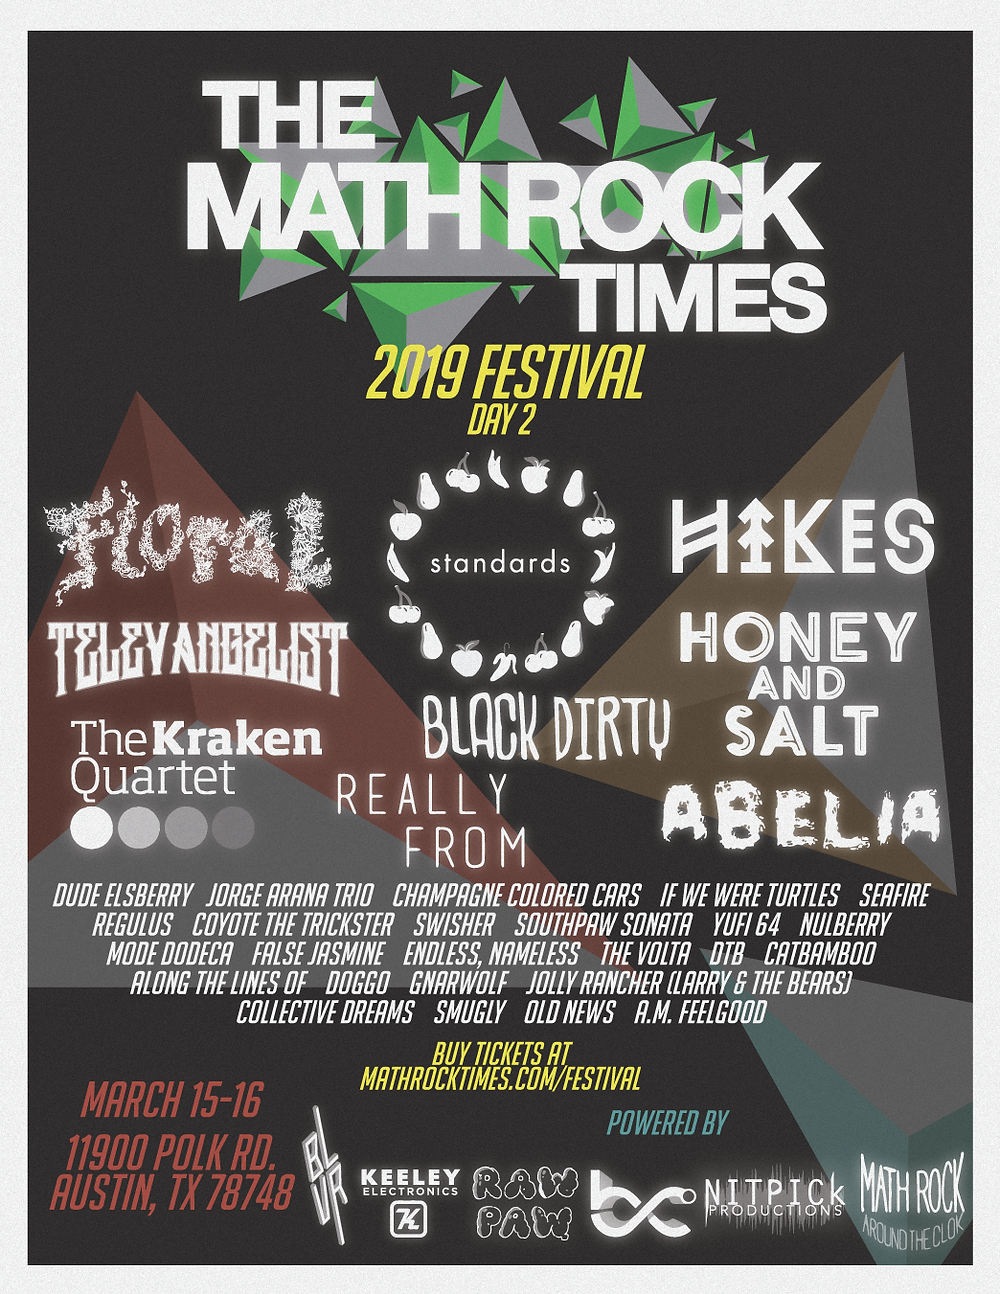 THE MATH ROCK TIMES FEST 2019 - DAY 2